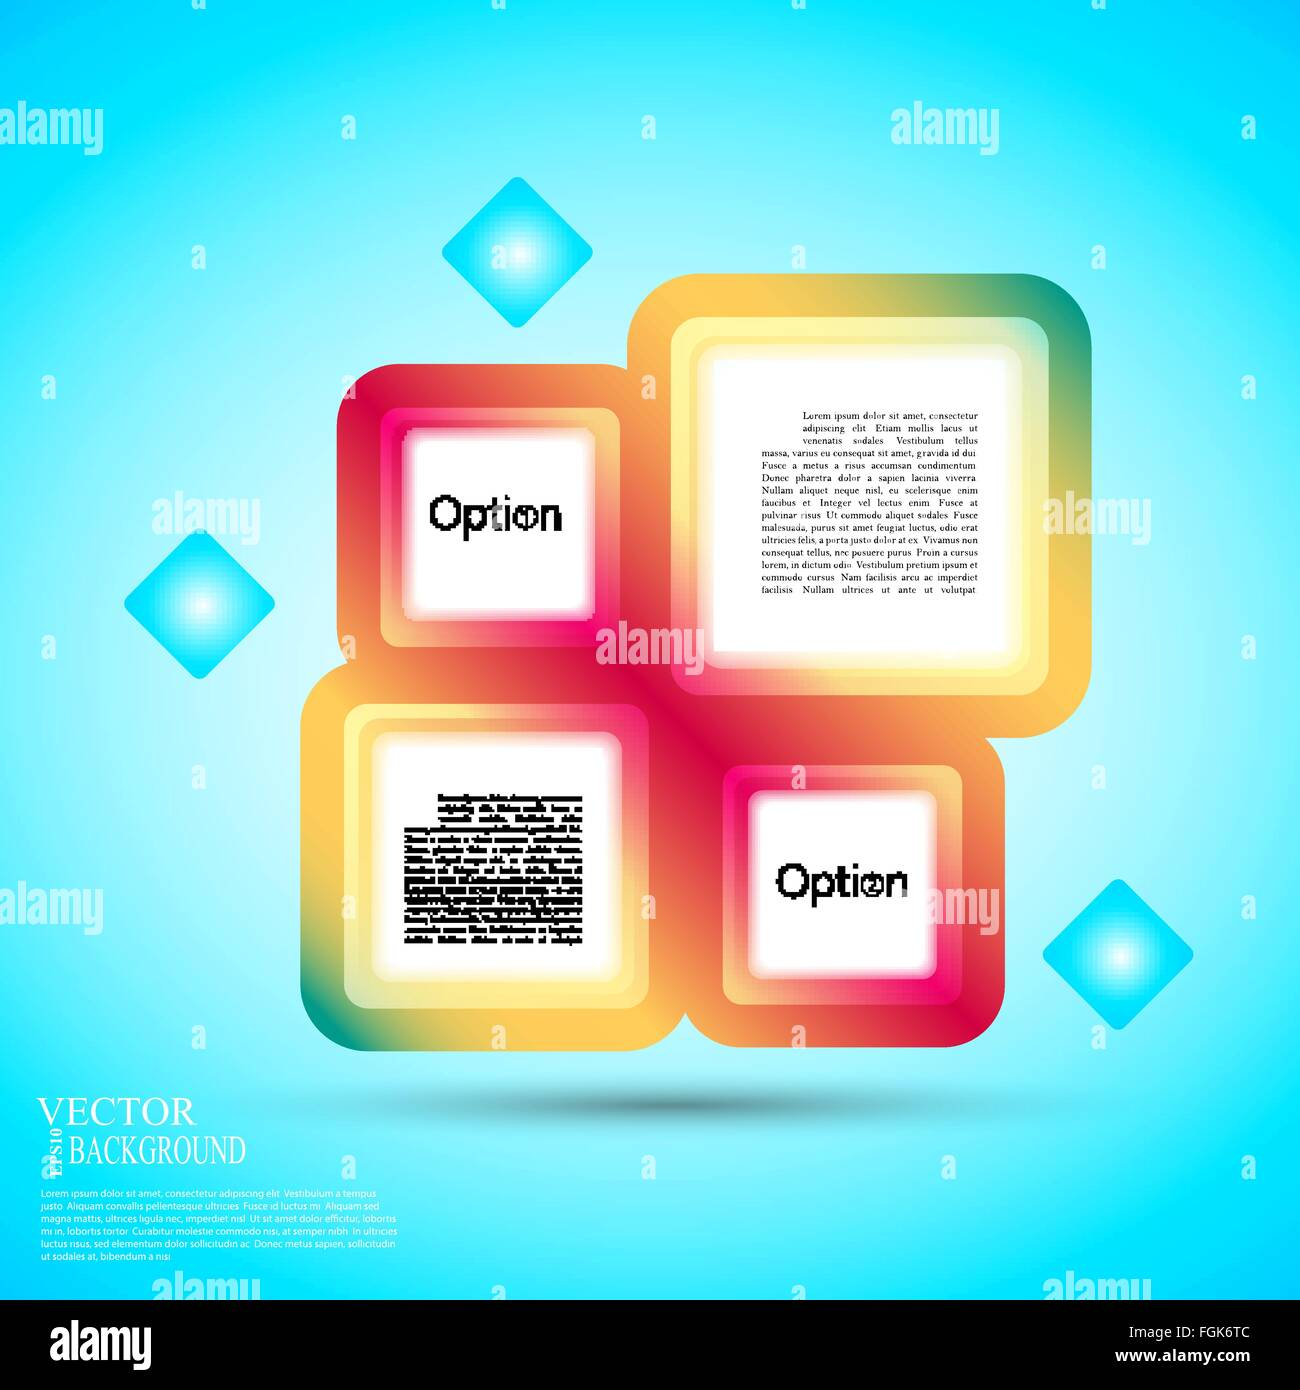 Abstract background of color boxes. Template for a text eps10 vector illustration - Stock Image